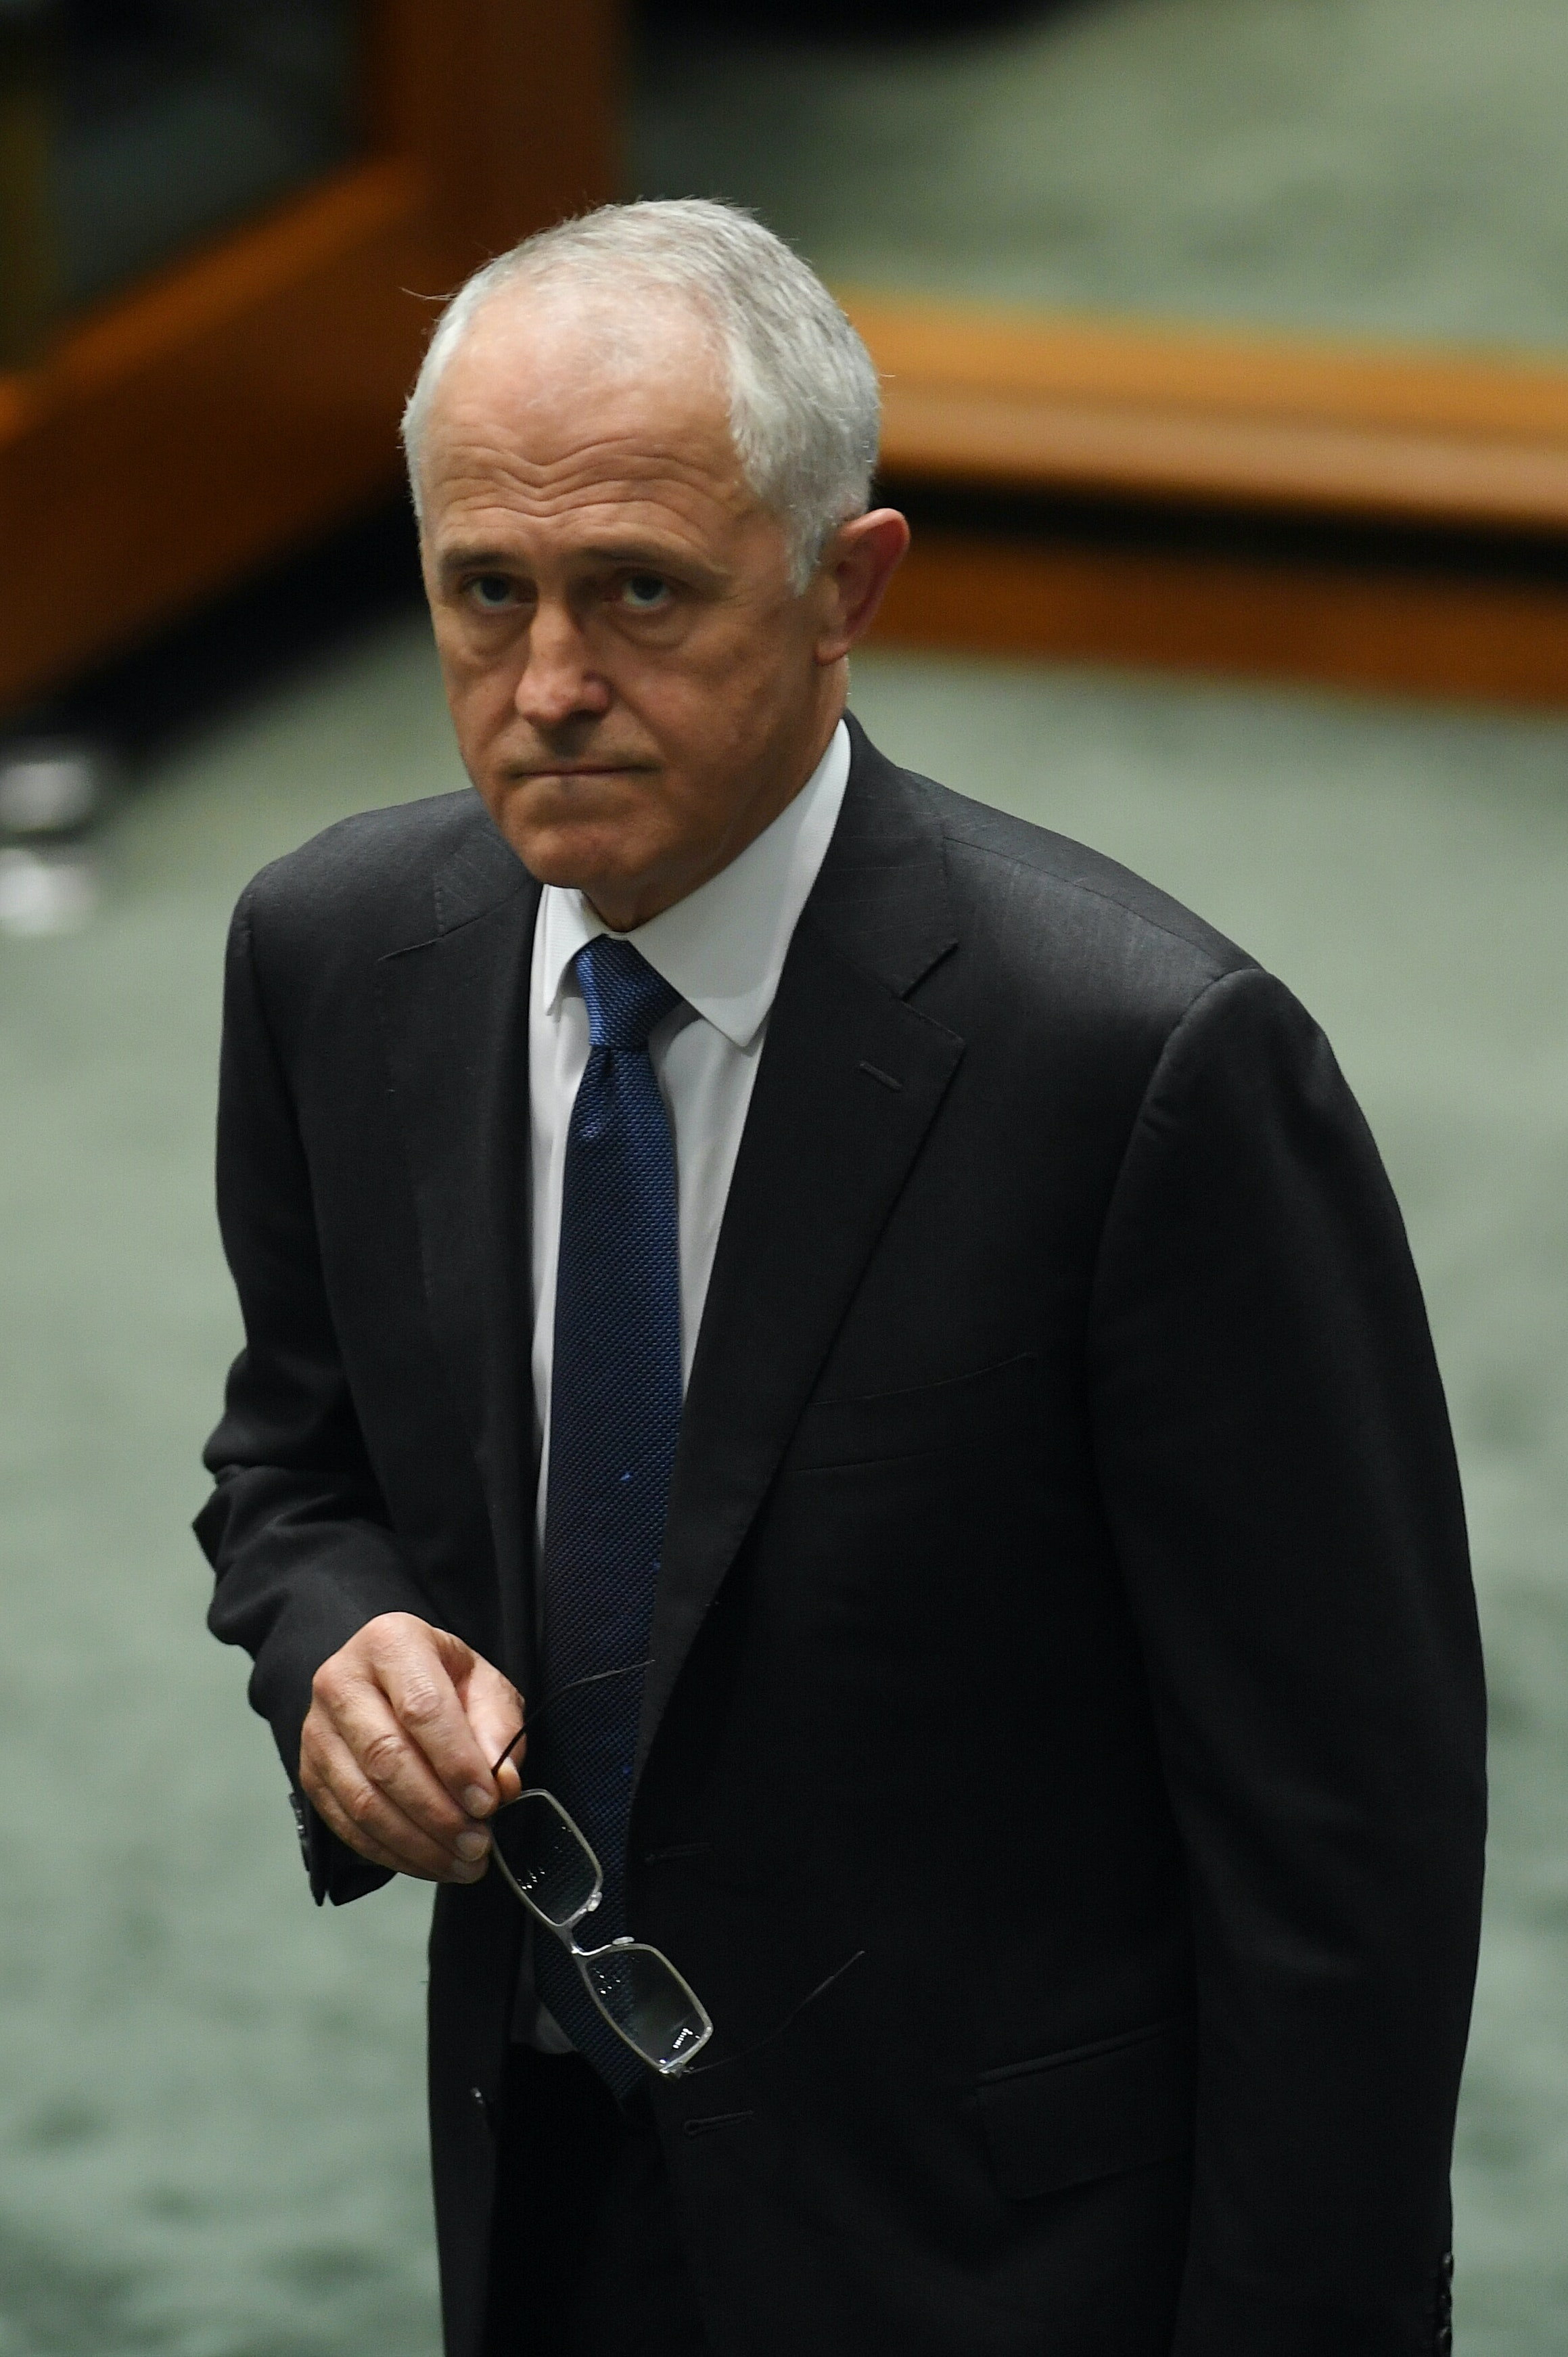 Malcolm Turnbull in 2017: emphasised inclusivity. Lukas Coch/AAP